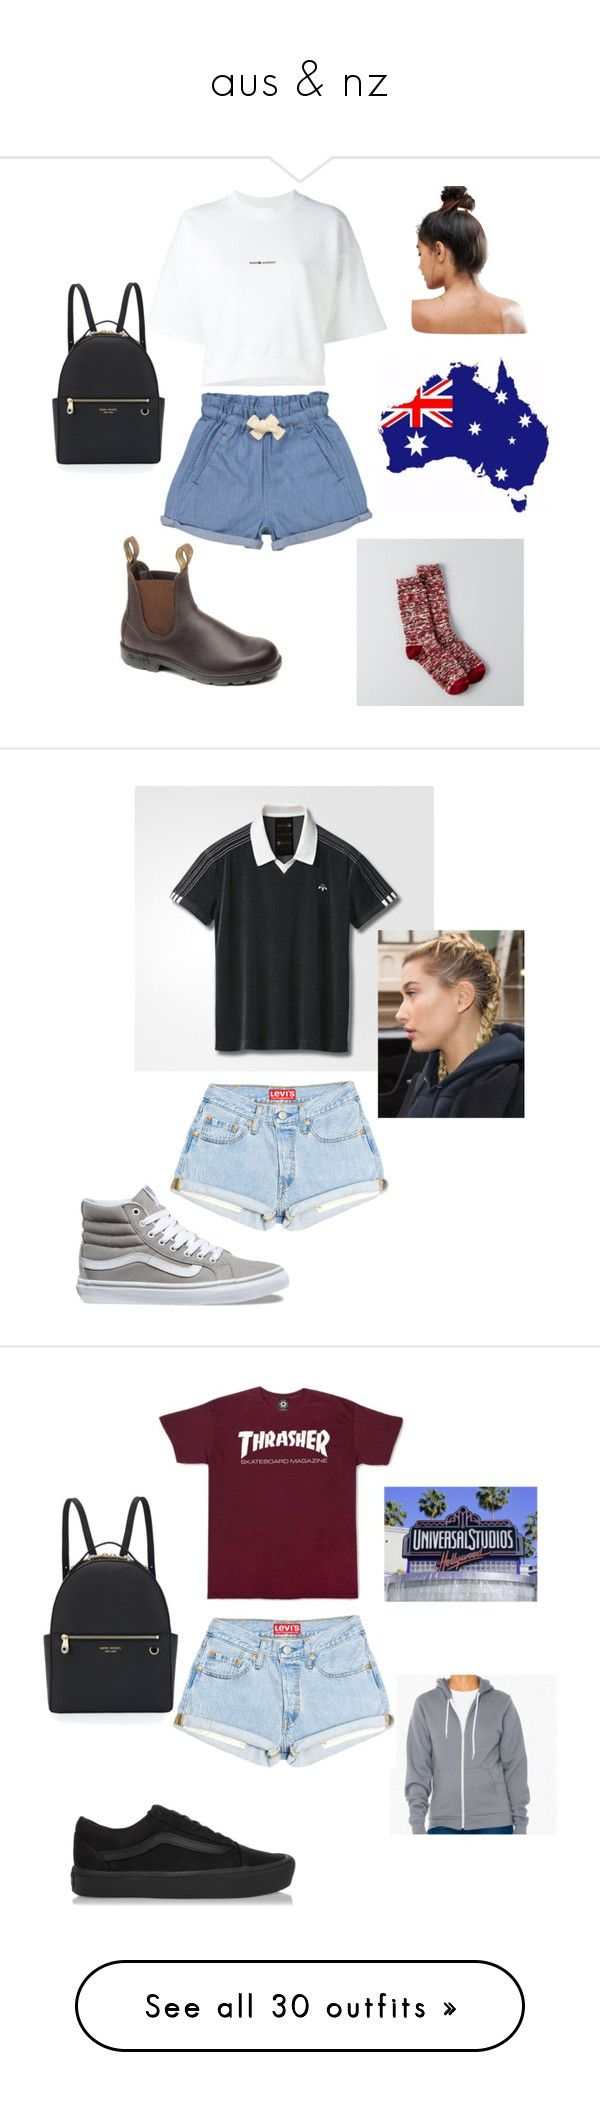 """""""aus & nz"""" by cookiescore on Polyvore featuring American Eagle Outfitters, Tootsa MacGinty, Yves Saint Laurent, Kitsch, Henri Bendel, Vans, Michael Kors, Puma, Topshop and adidas"""